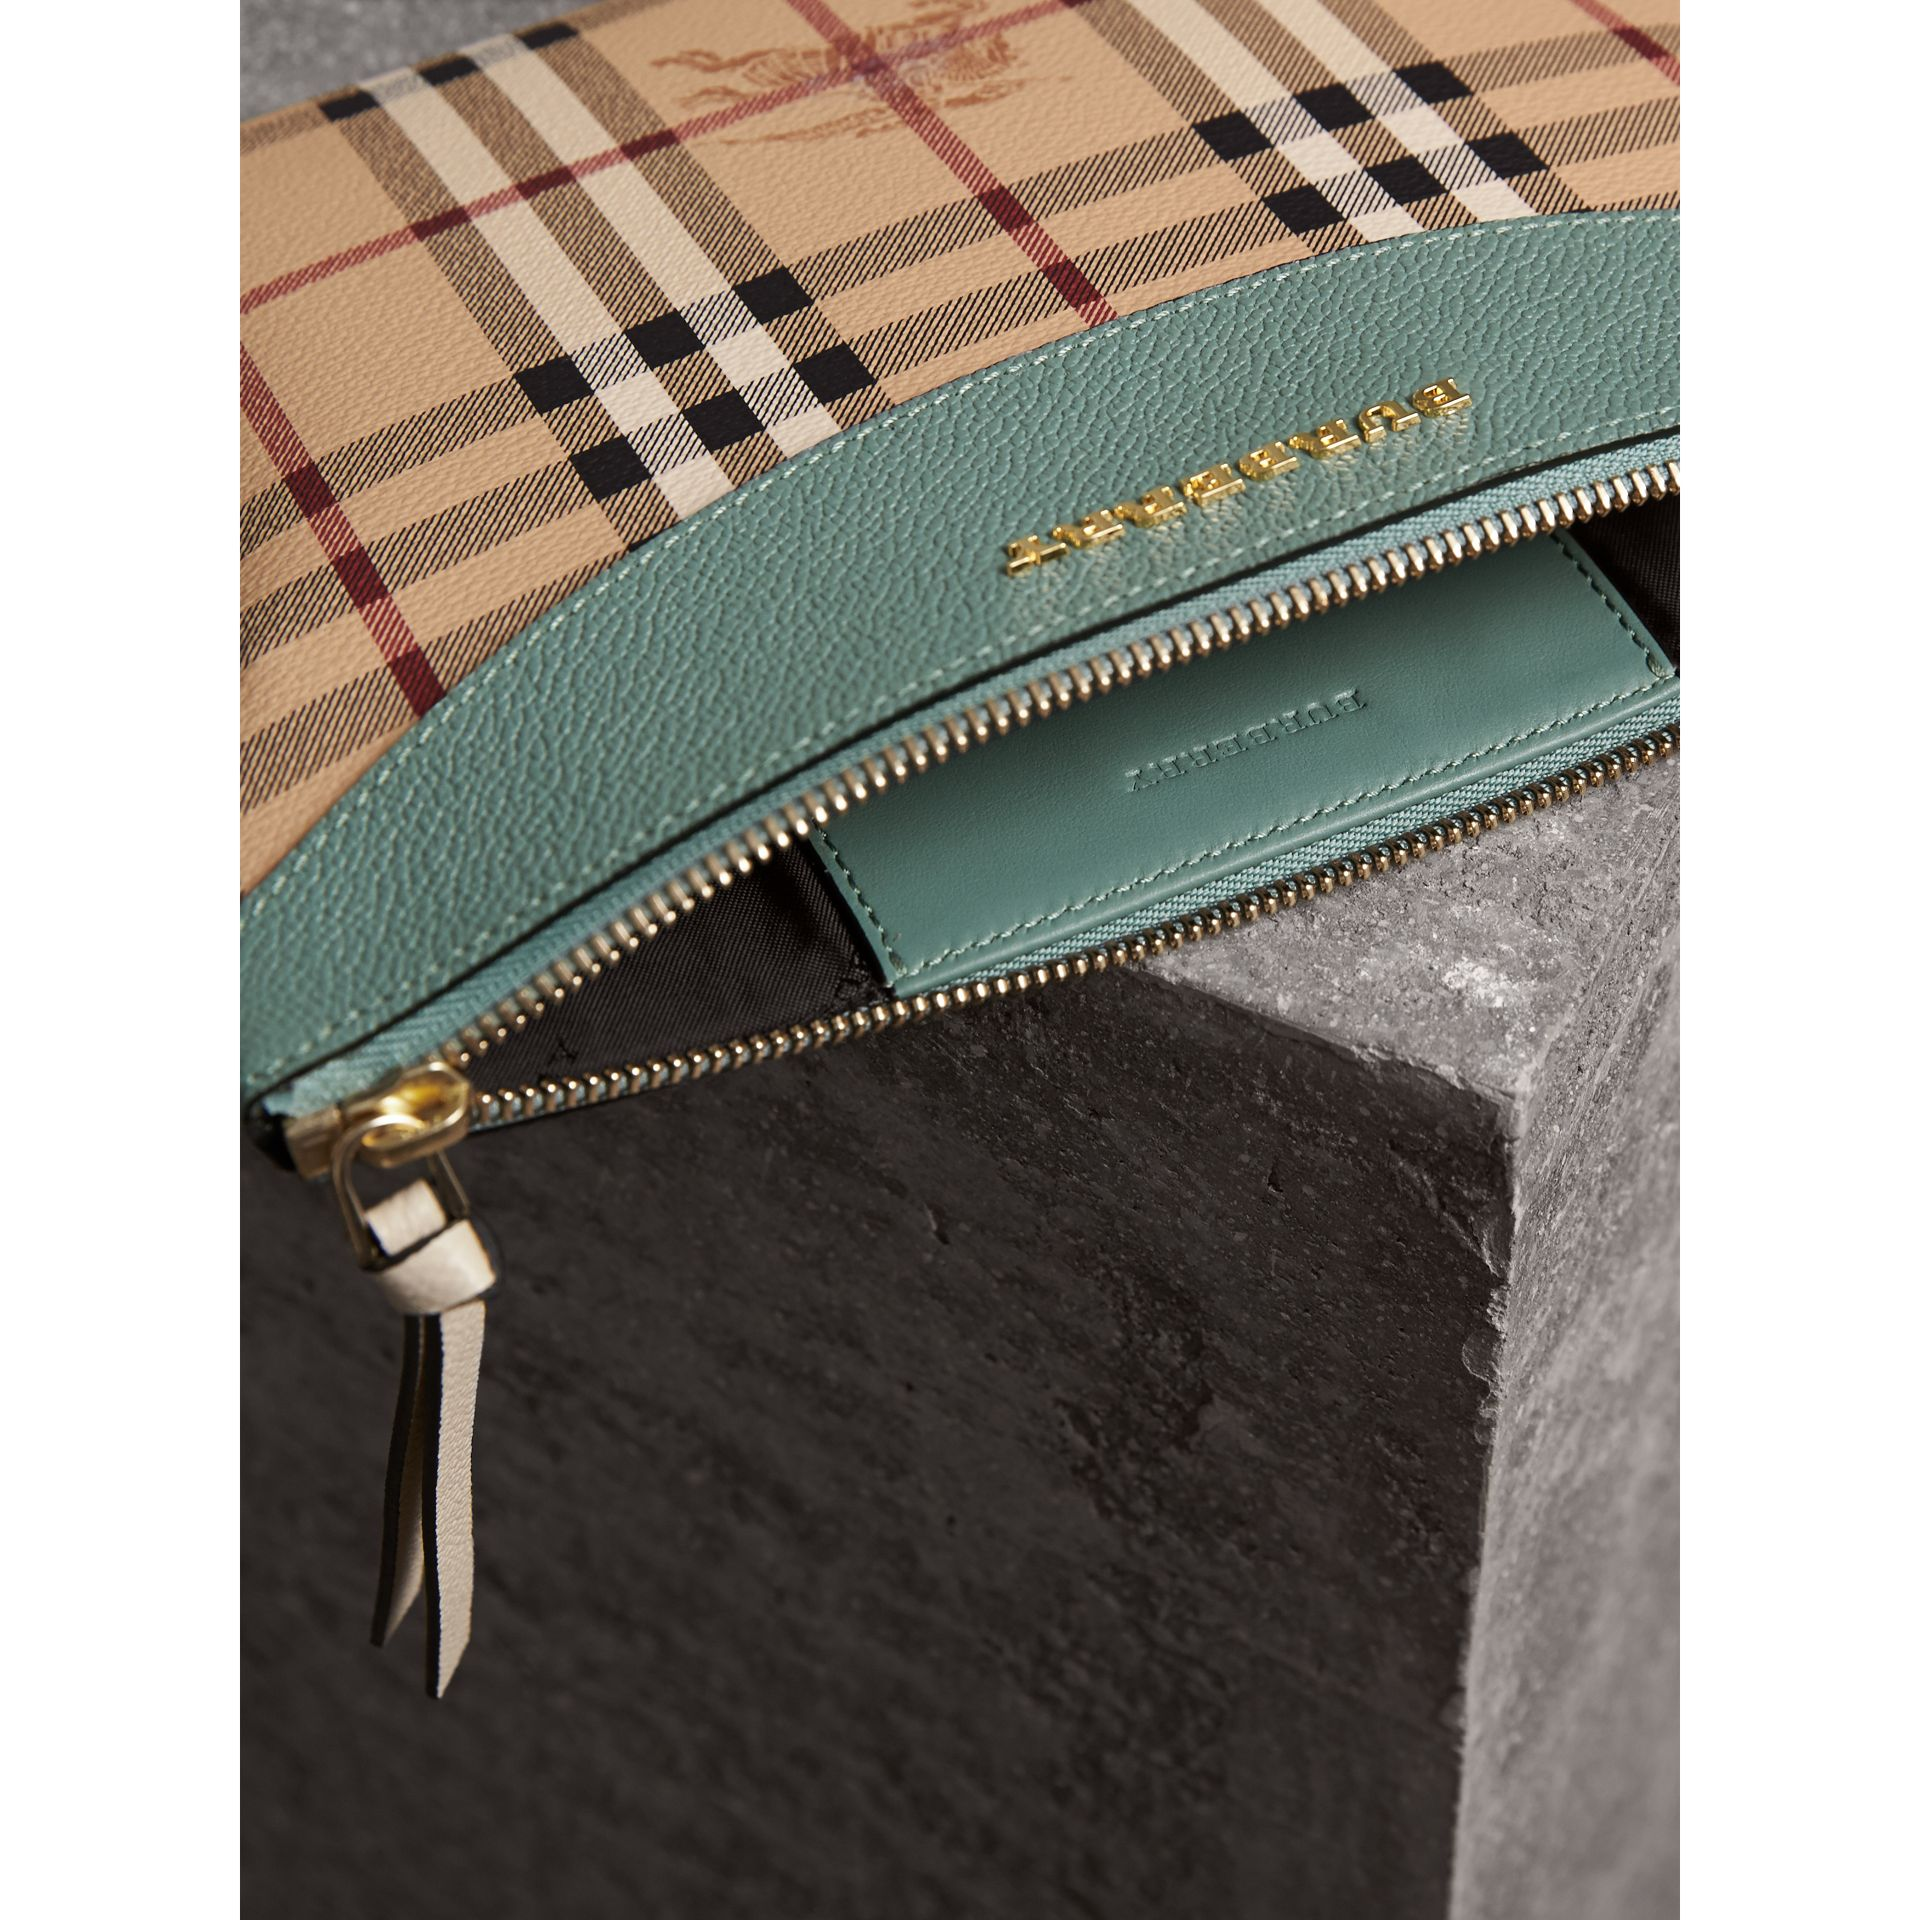 Haymarket Check and Two-tone Leather Clutch Bag in Eucalyptus Green/multicolour - Women | Burberry - gallery image 6